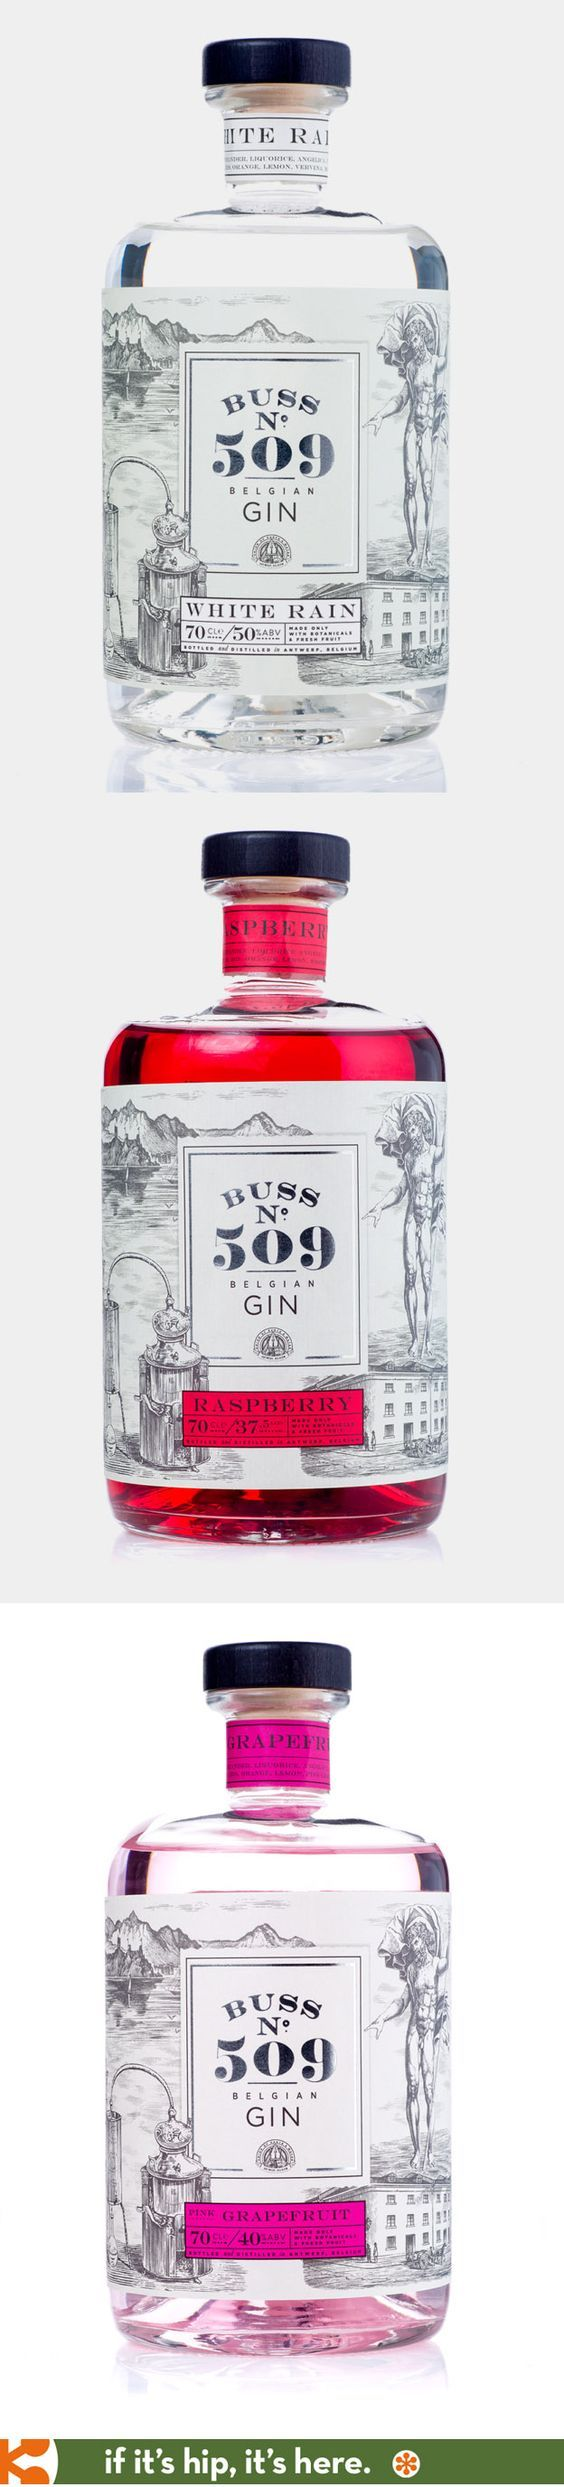 Buss No. 509 Gin Packaging | Fivestar Branding – Design and Branding Agency & Inspiration Gallery